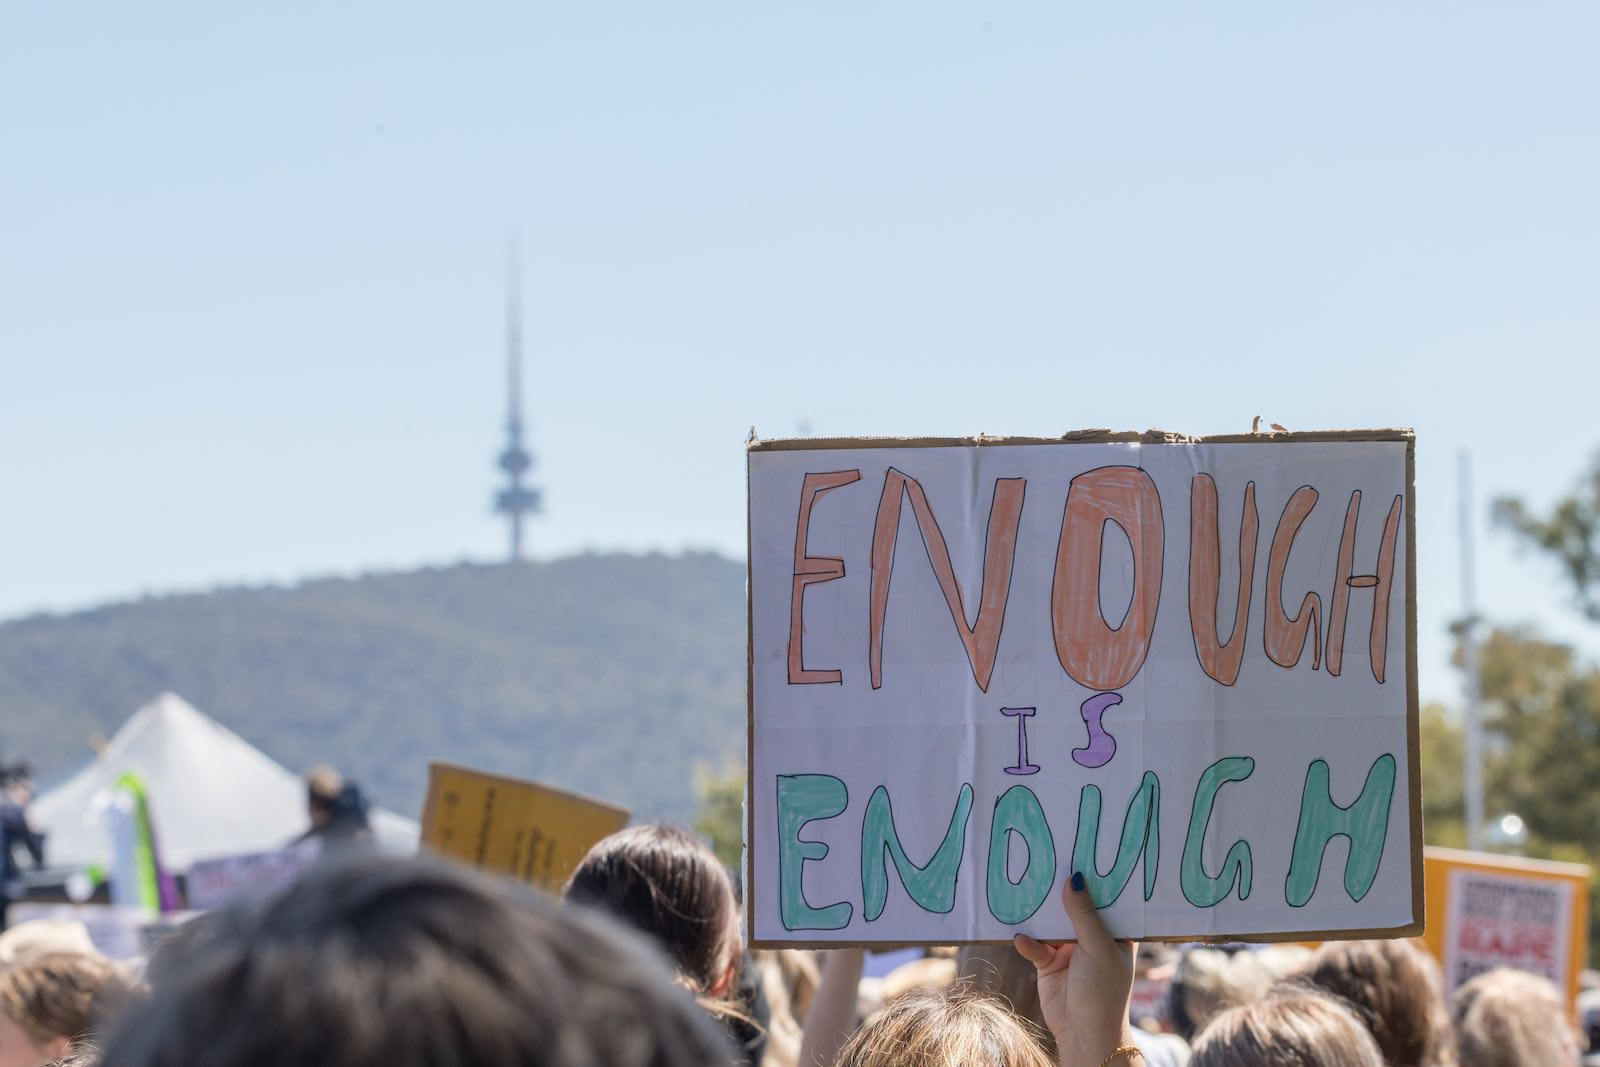 """A """"March4Justice"""" rally in support of women's rights in Canberra, Australia, 15 March (Liu Changchang/Xinhua via Getty Images)"""